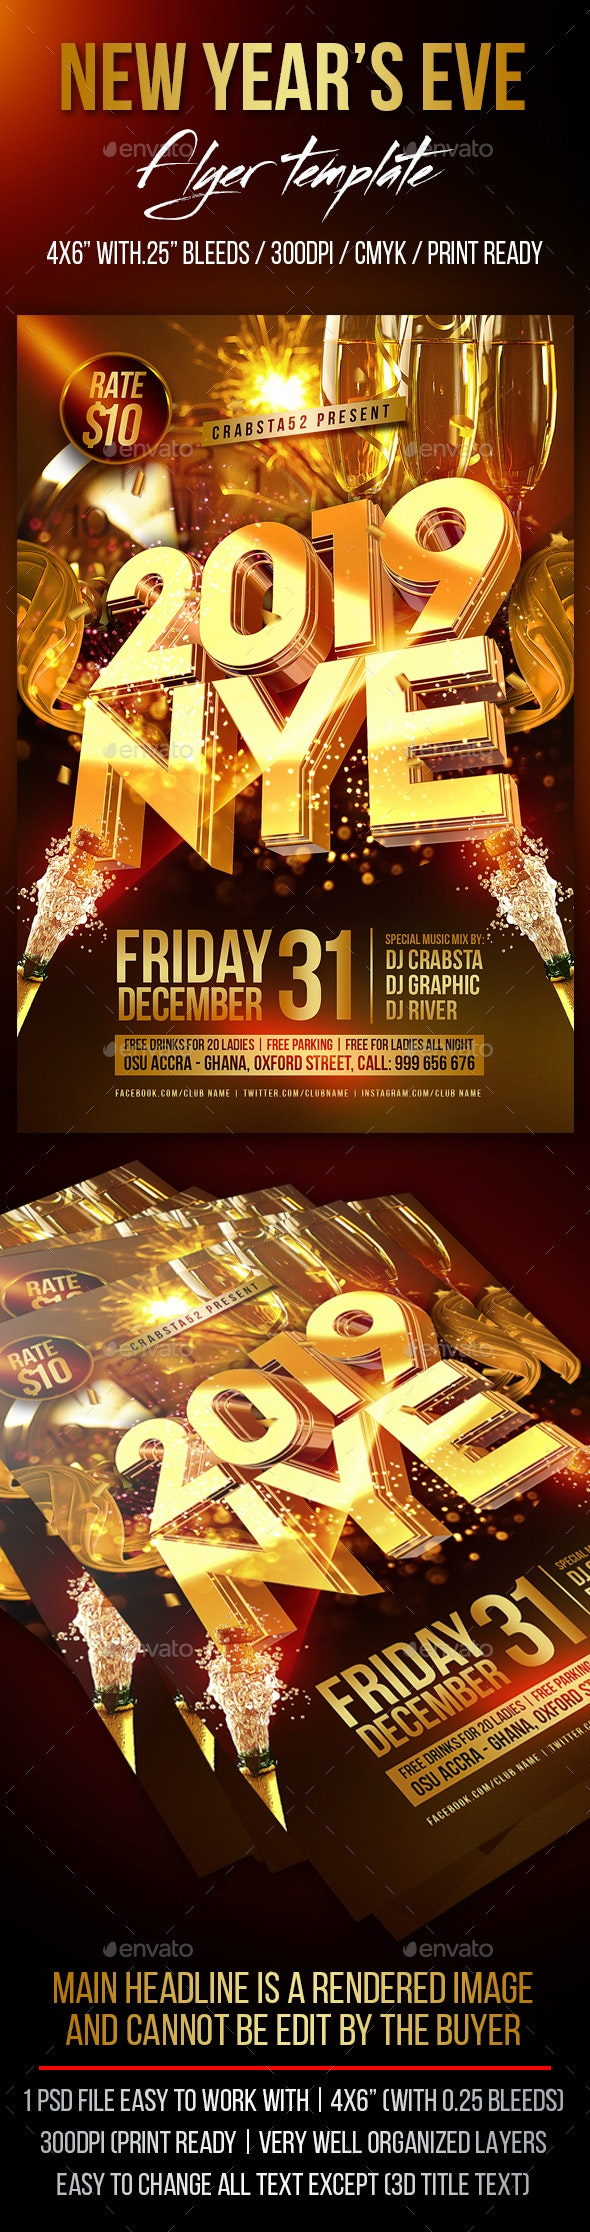 New Year's Eve Flyer Template - Events Flyers